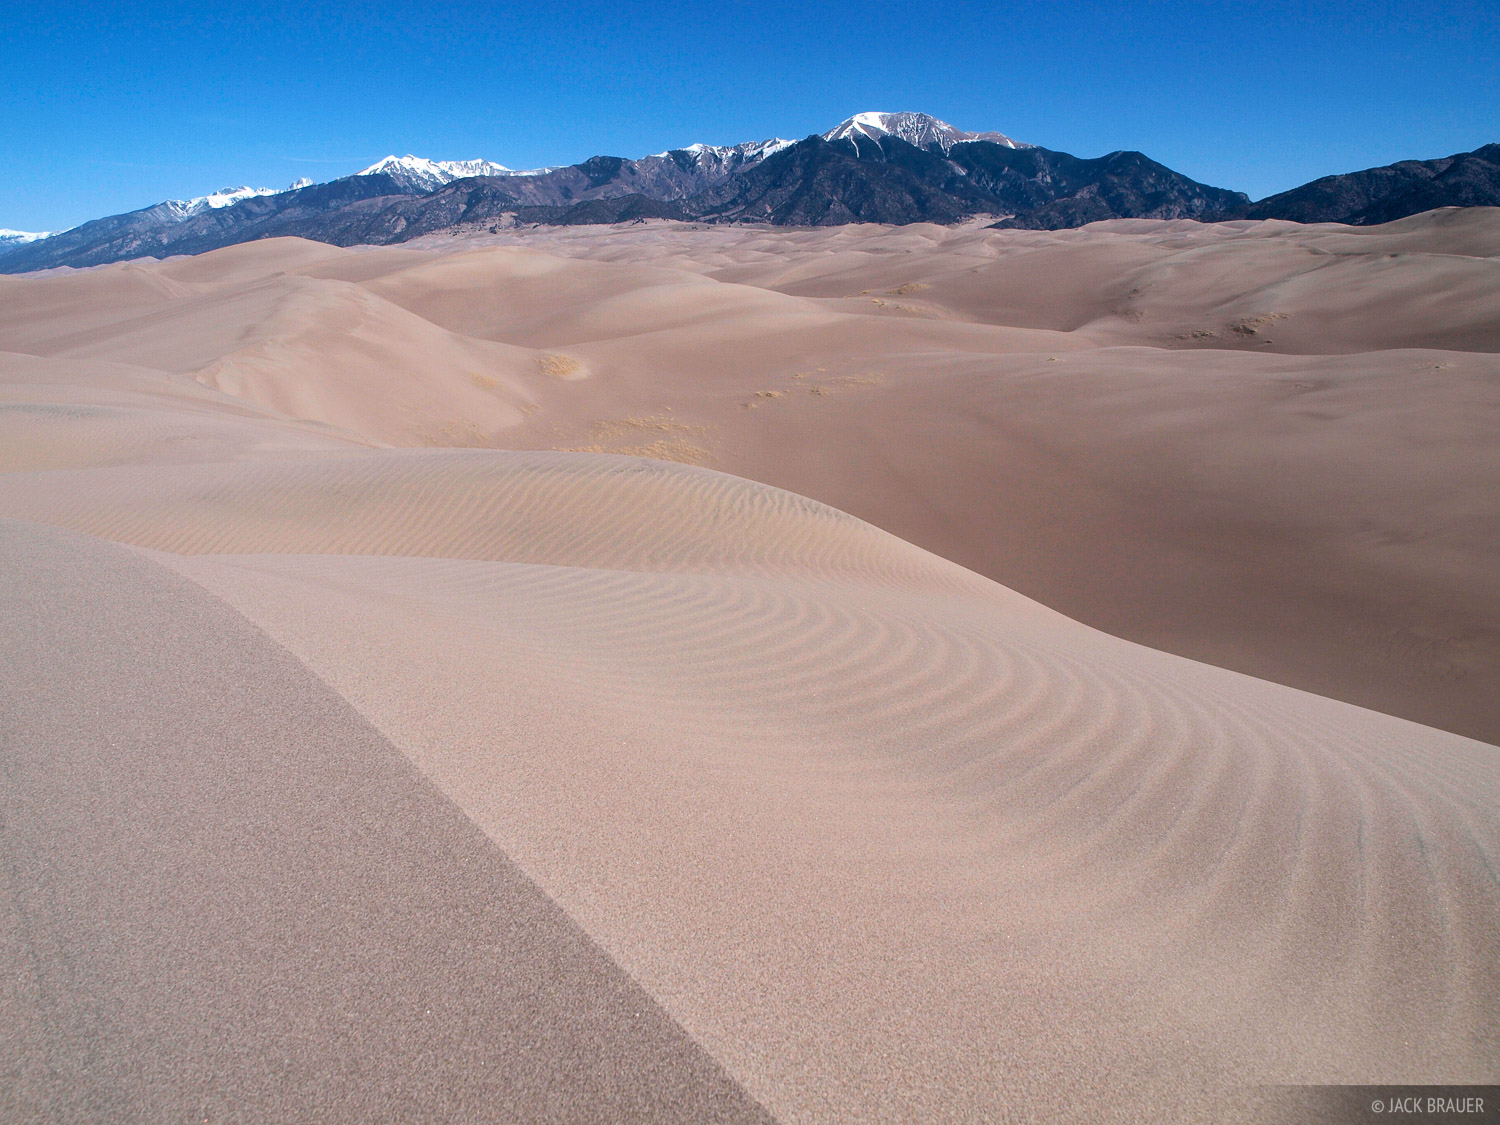 Mount Herard and the Sangre de Cristos rise above the Great Sand Dunes.